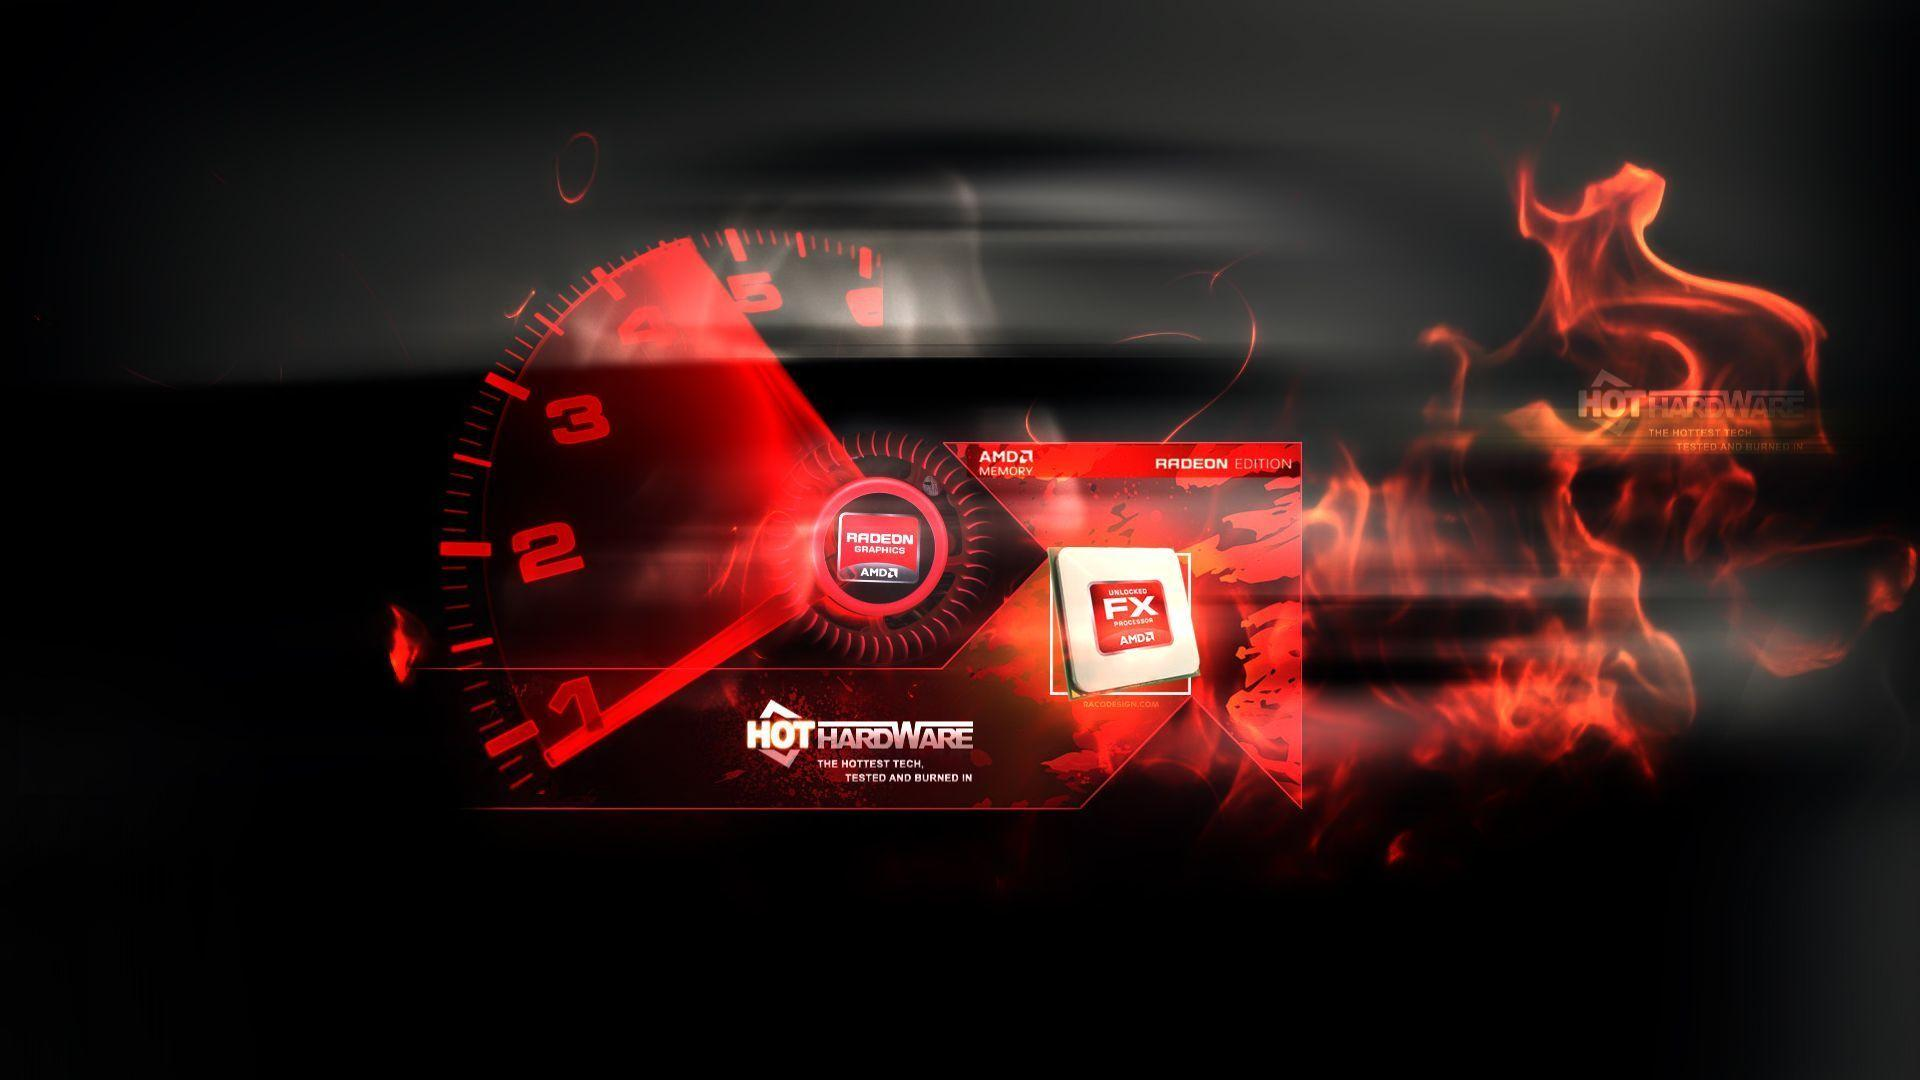 amd fx background by - photo #4